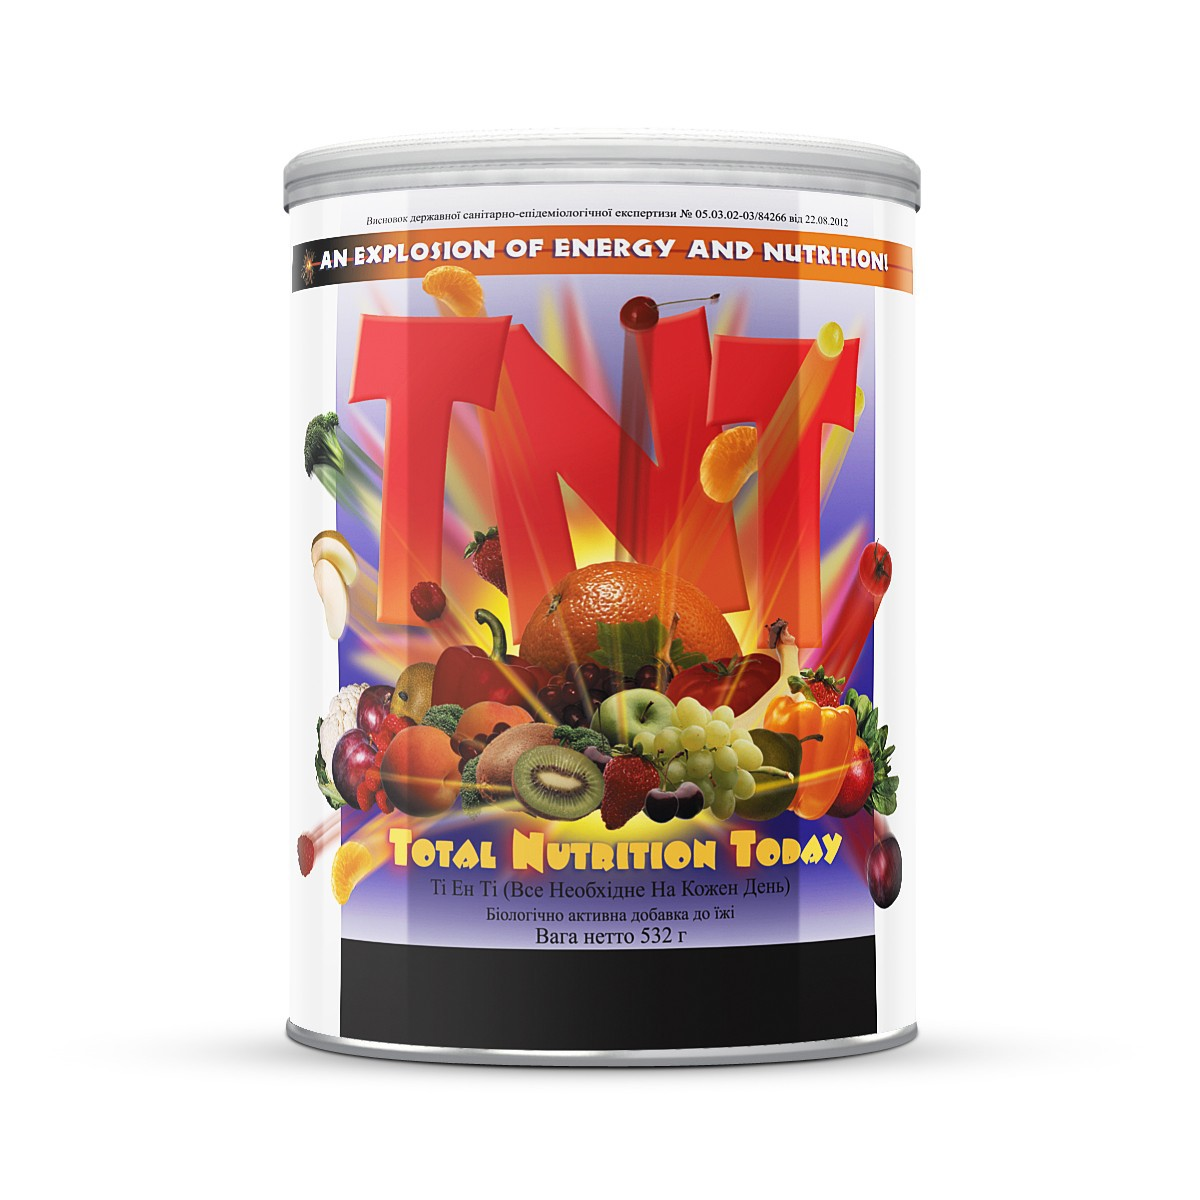 TNT (Total Nutrition Today)